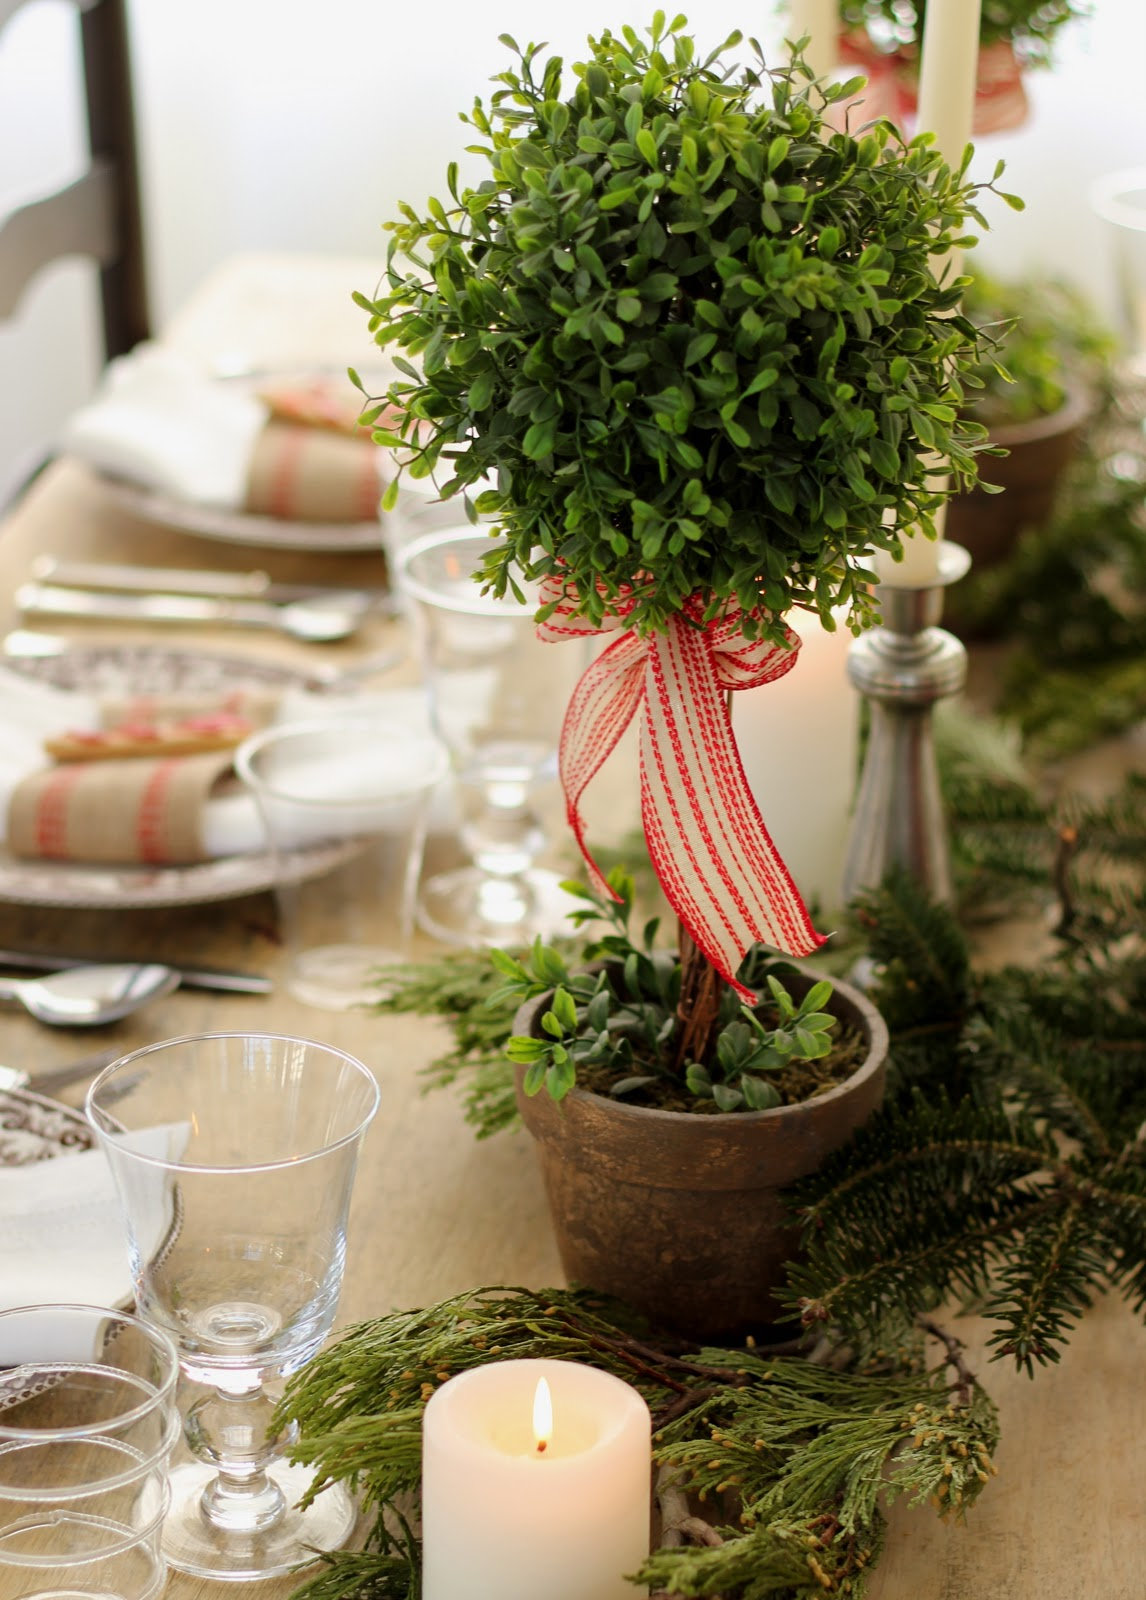 Jenny steffens hobick holiday table setting centerpiece - Christmas table setting ideas ...